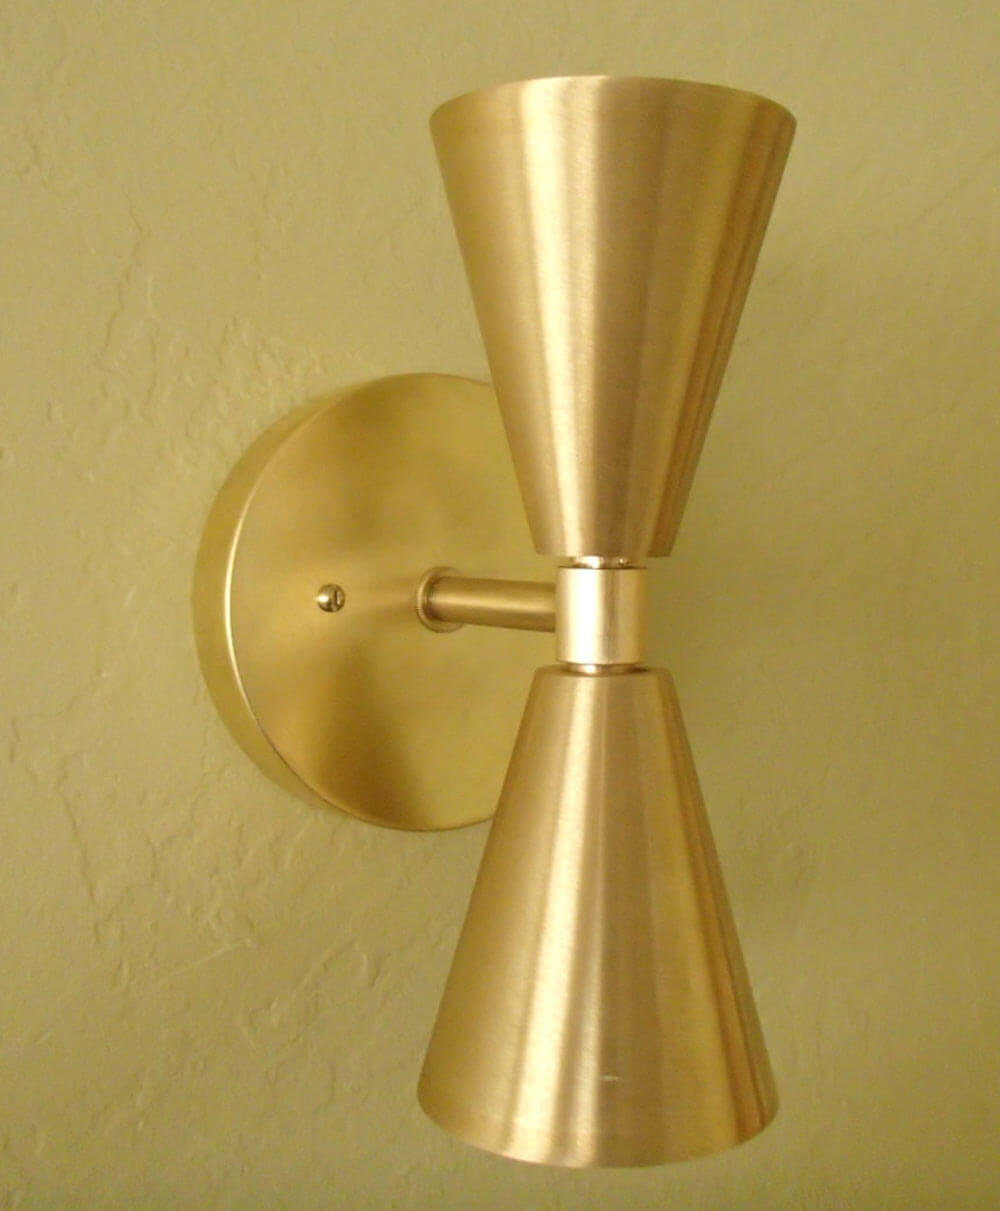 Six places to buy beautiful double cone u0026quot;bowtieu0026quot; lights - from $79 to $205 - Retro Renovation